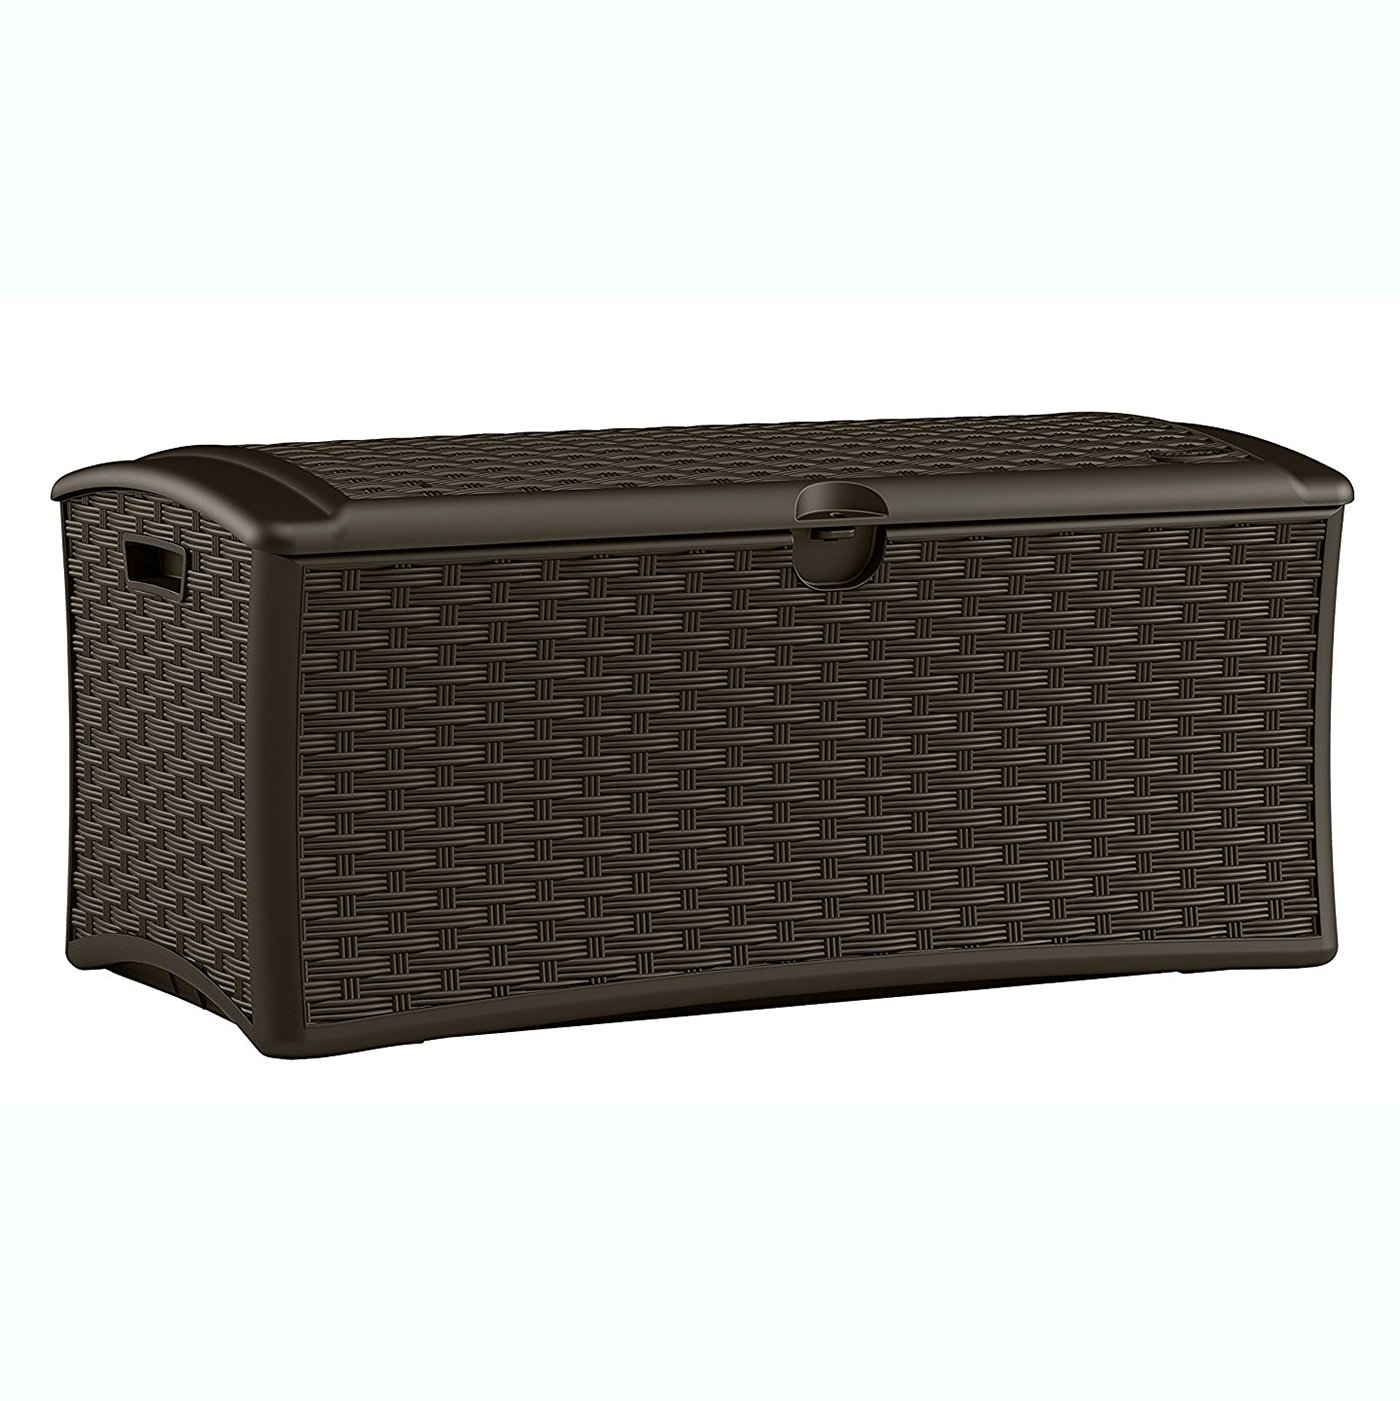 Suncast 72 Gallon Capacity Resin Wicker Outdoor Patio Storage Deck Box, Brown